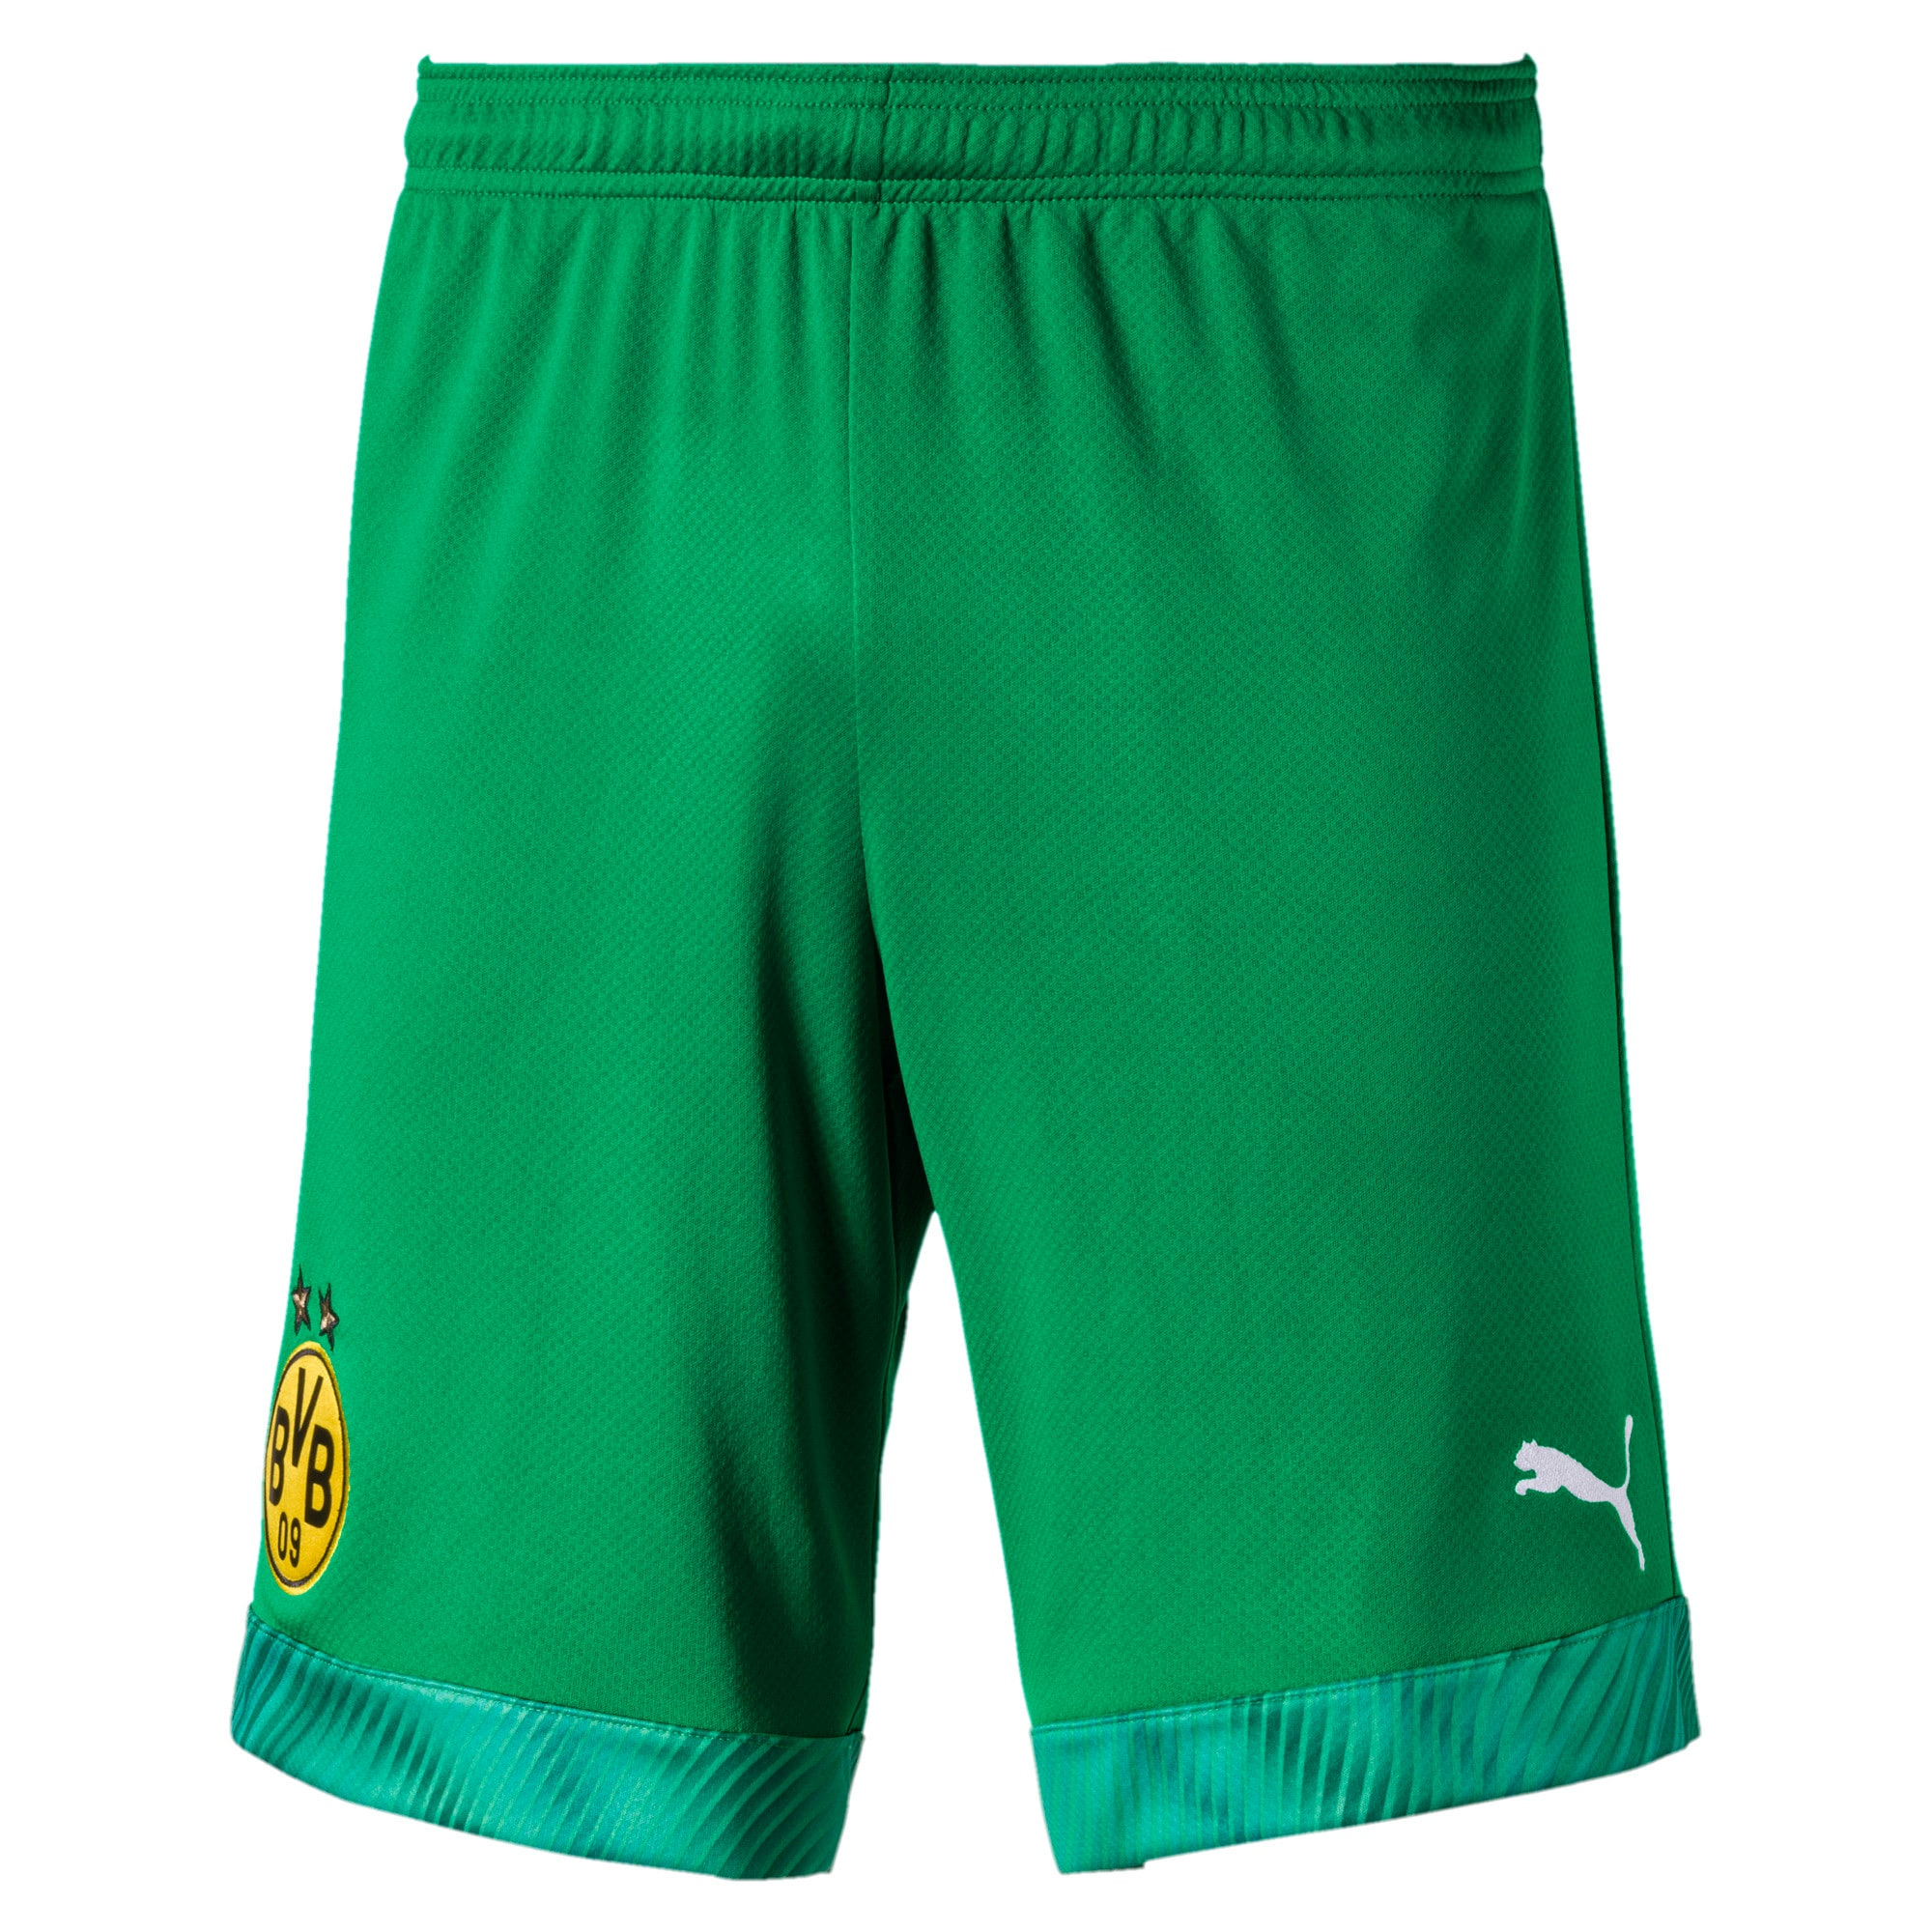 Thumbnail 1 of BVB Men's Replica Goalkeeper Shorts, Bright Green, medium